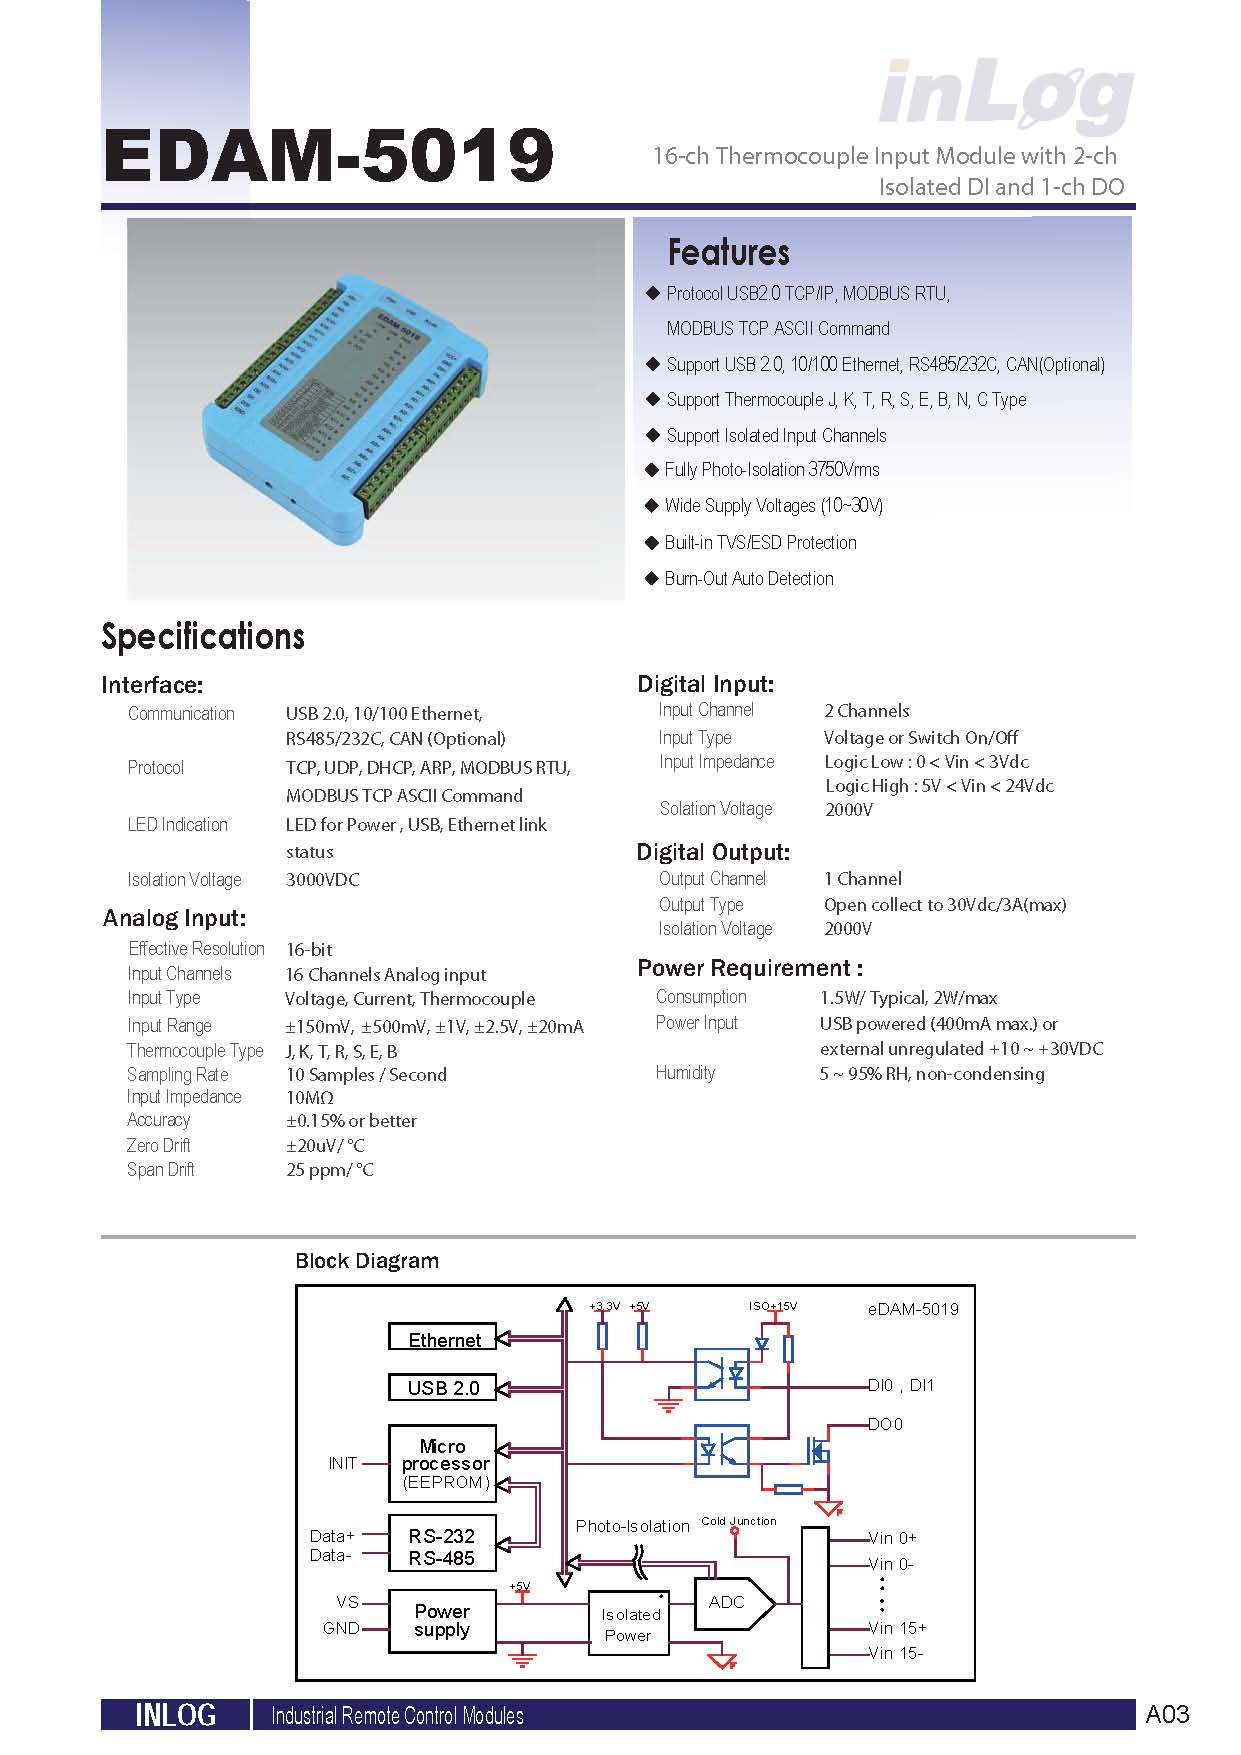 Taiwan 16 Ch Thermocouple Input Module With 2 Iso Di And 1 Do T R Block Diagram